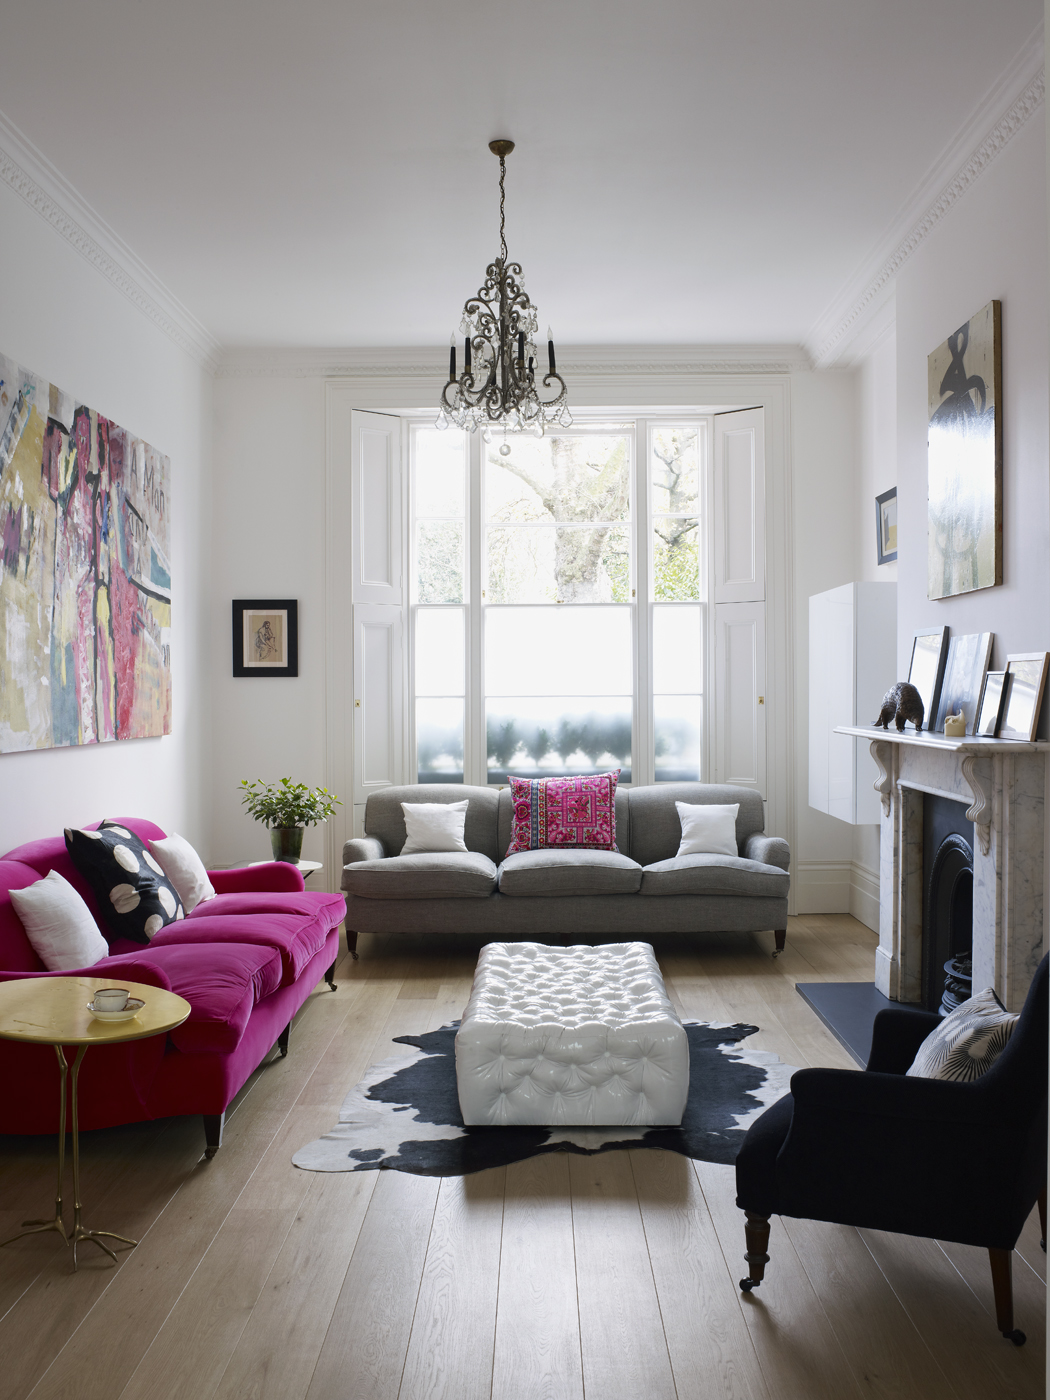 Sitting Room Interior Design: The London Look